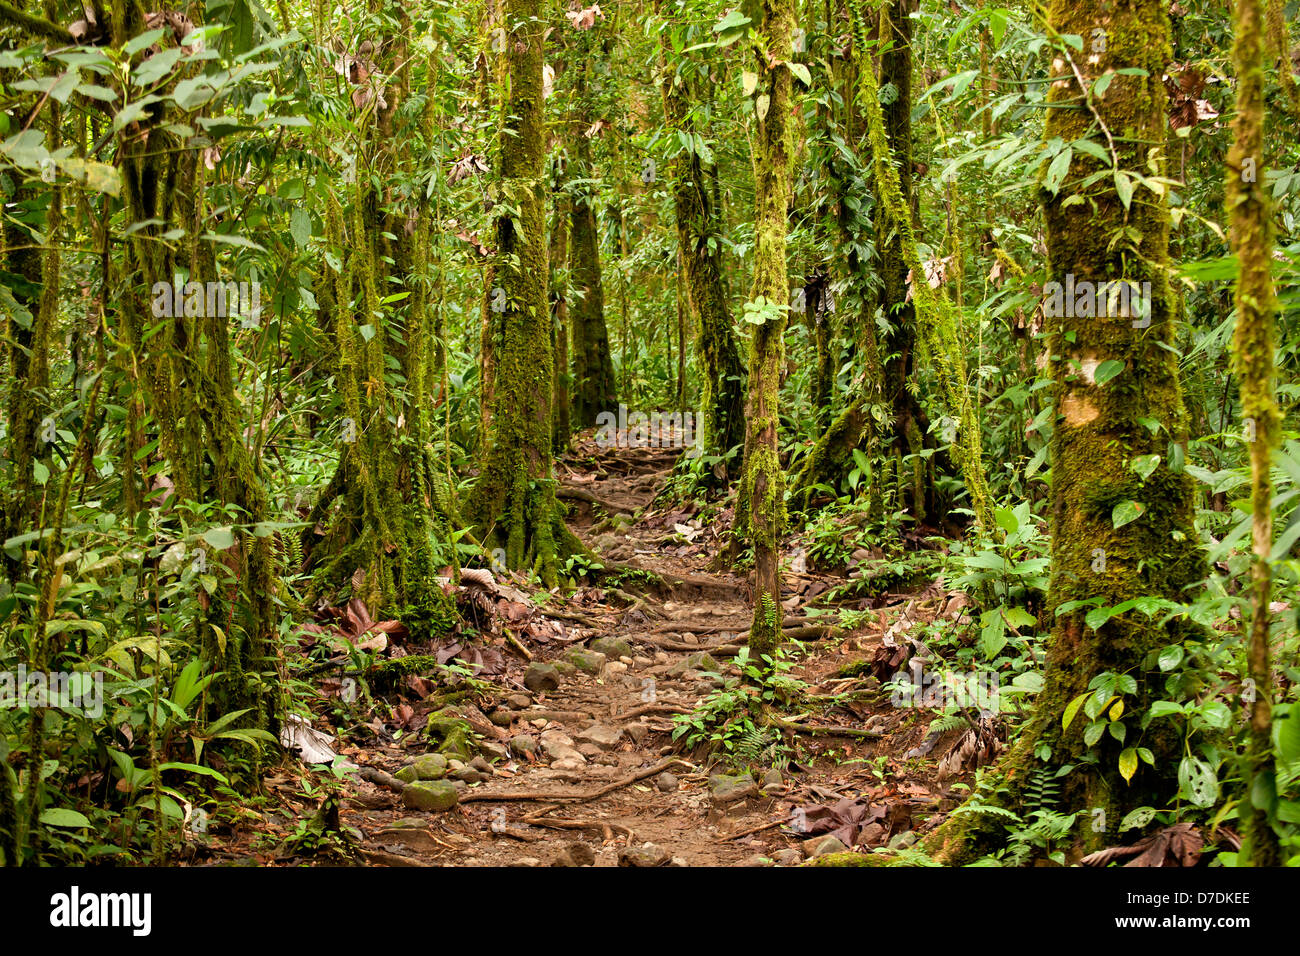 Moss-covered trees on a trail in the Volcán Tenorio National Park, Costa Rica, Central America - Stock Image